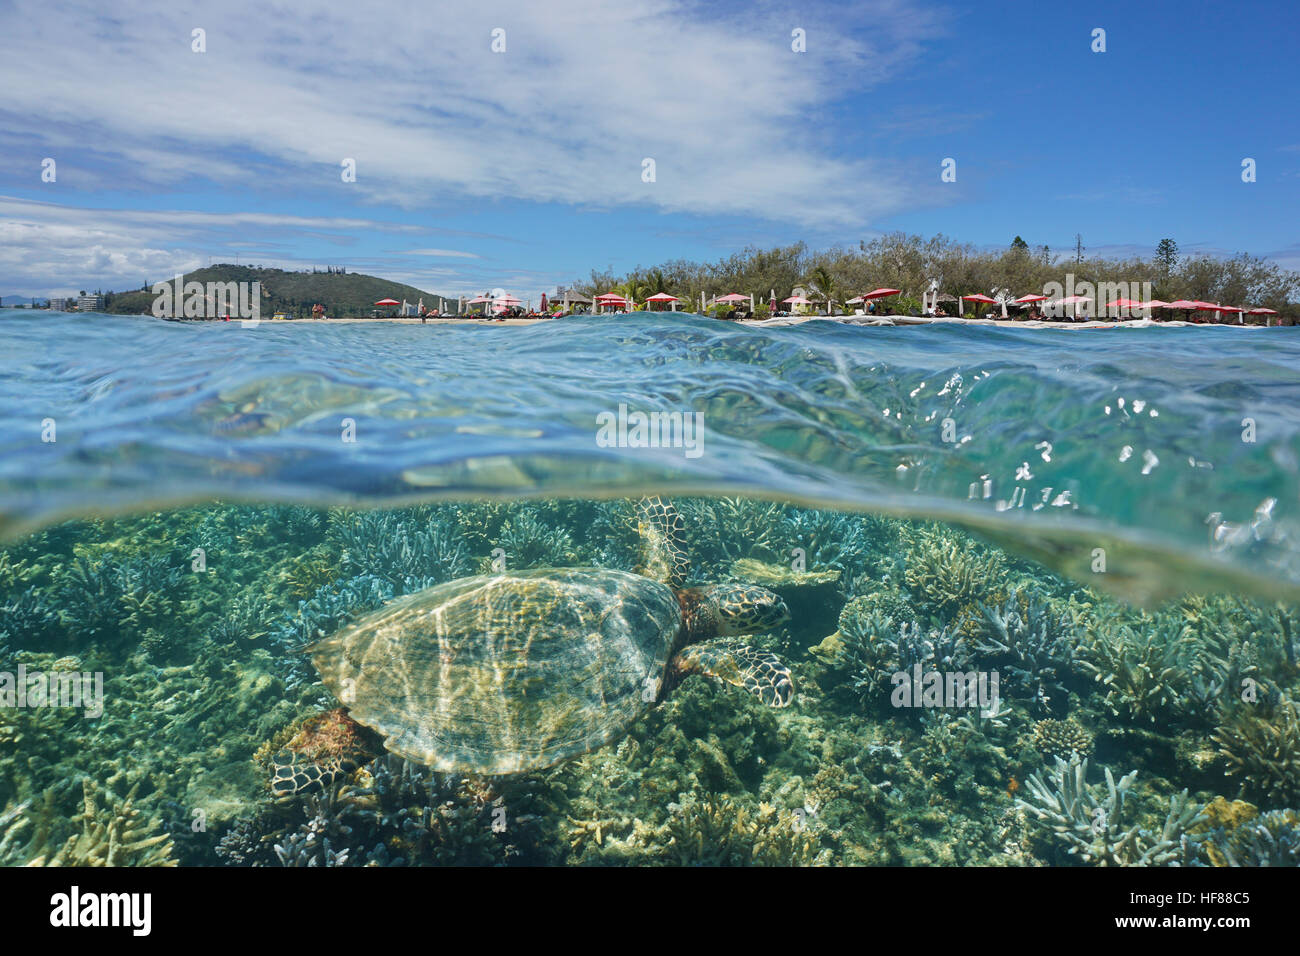 A hawksbill sea turtle underwater and islet Canard over the water split by waterline, New Caledonia, Noumea, south - Stock Image